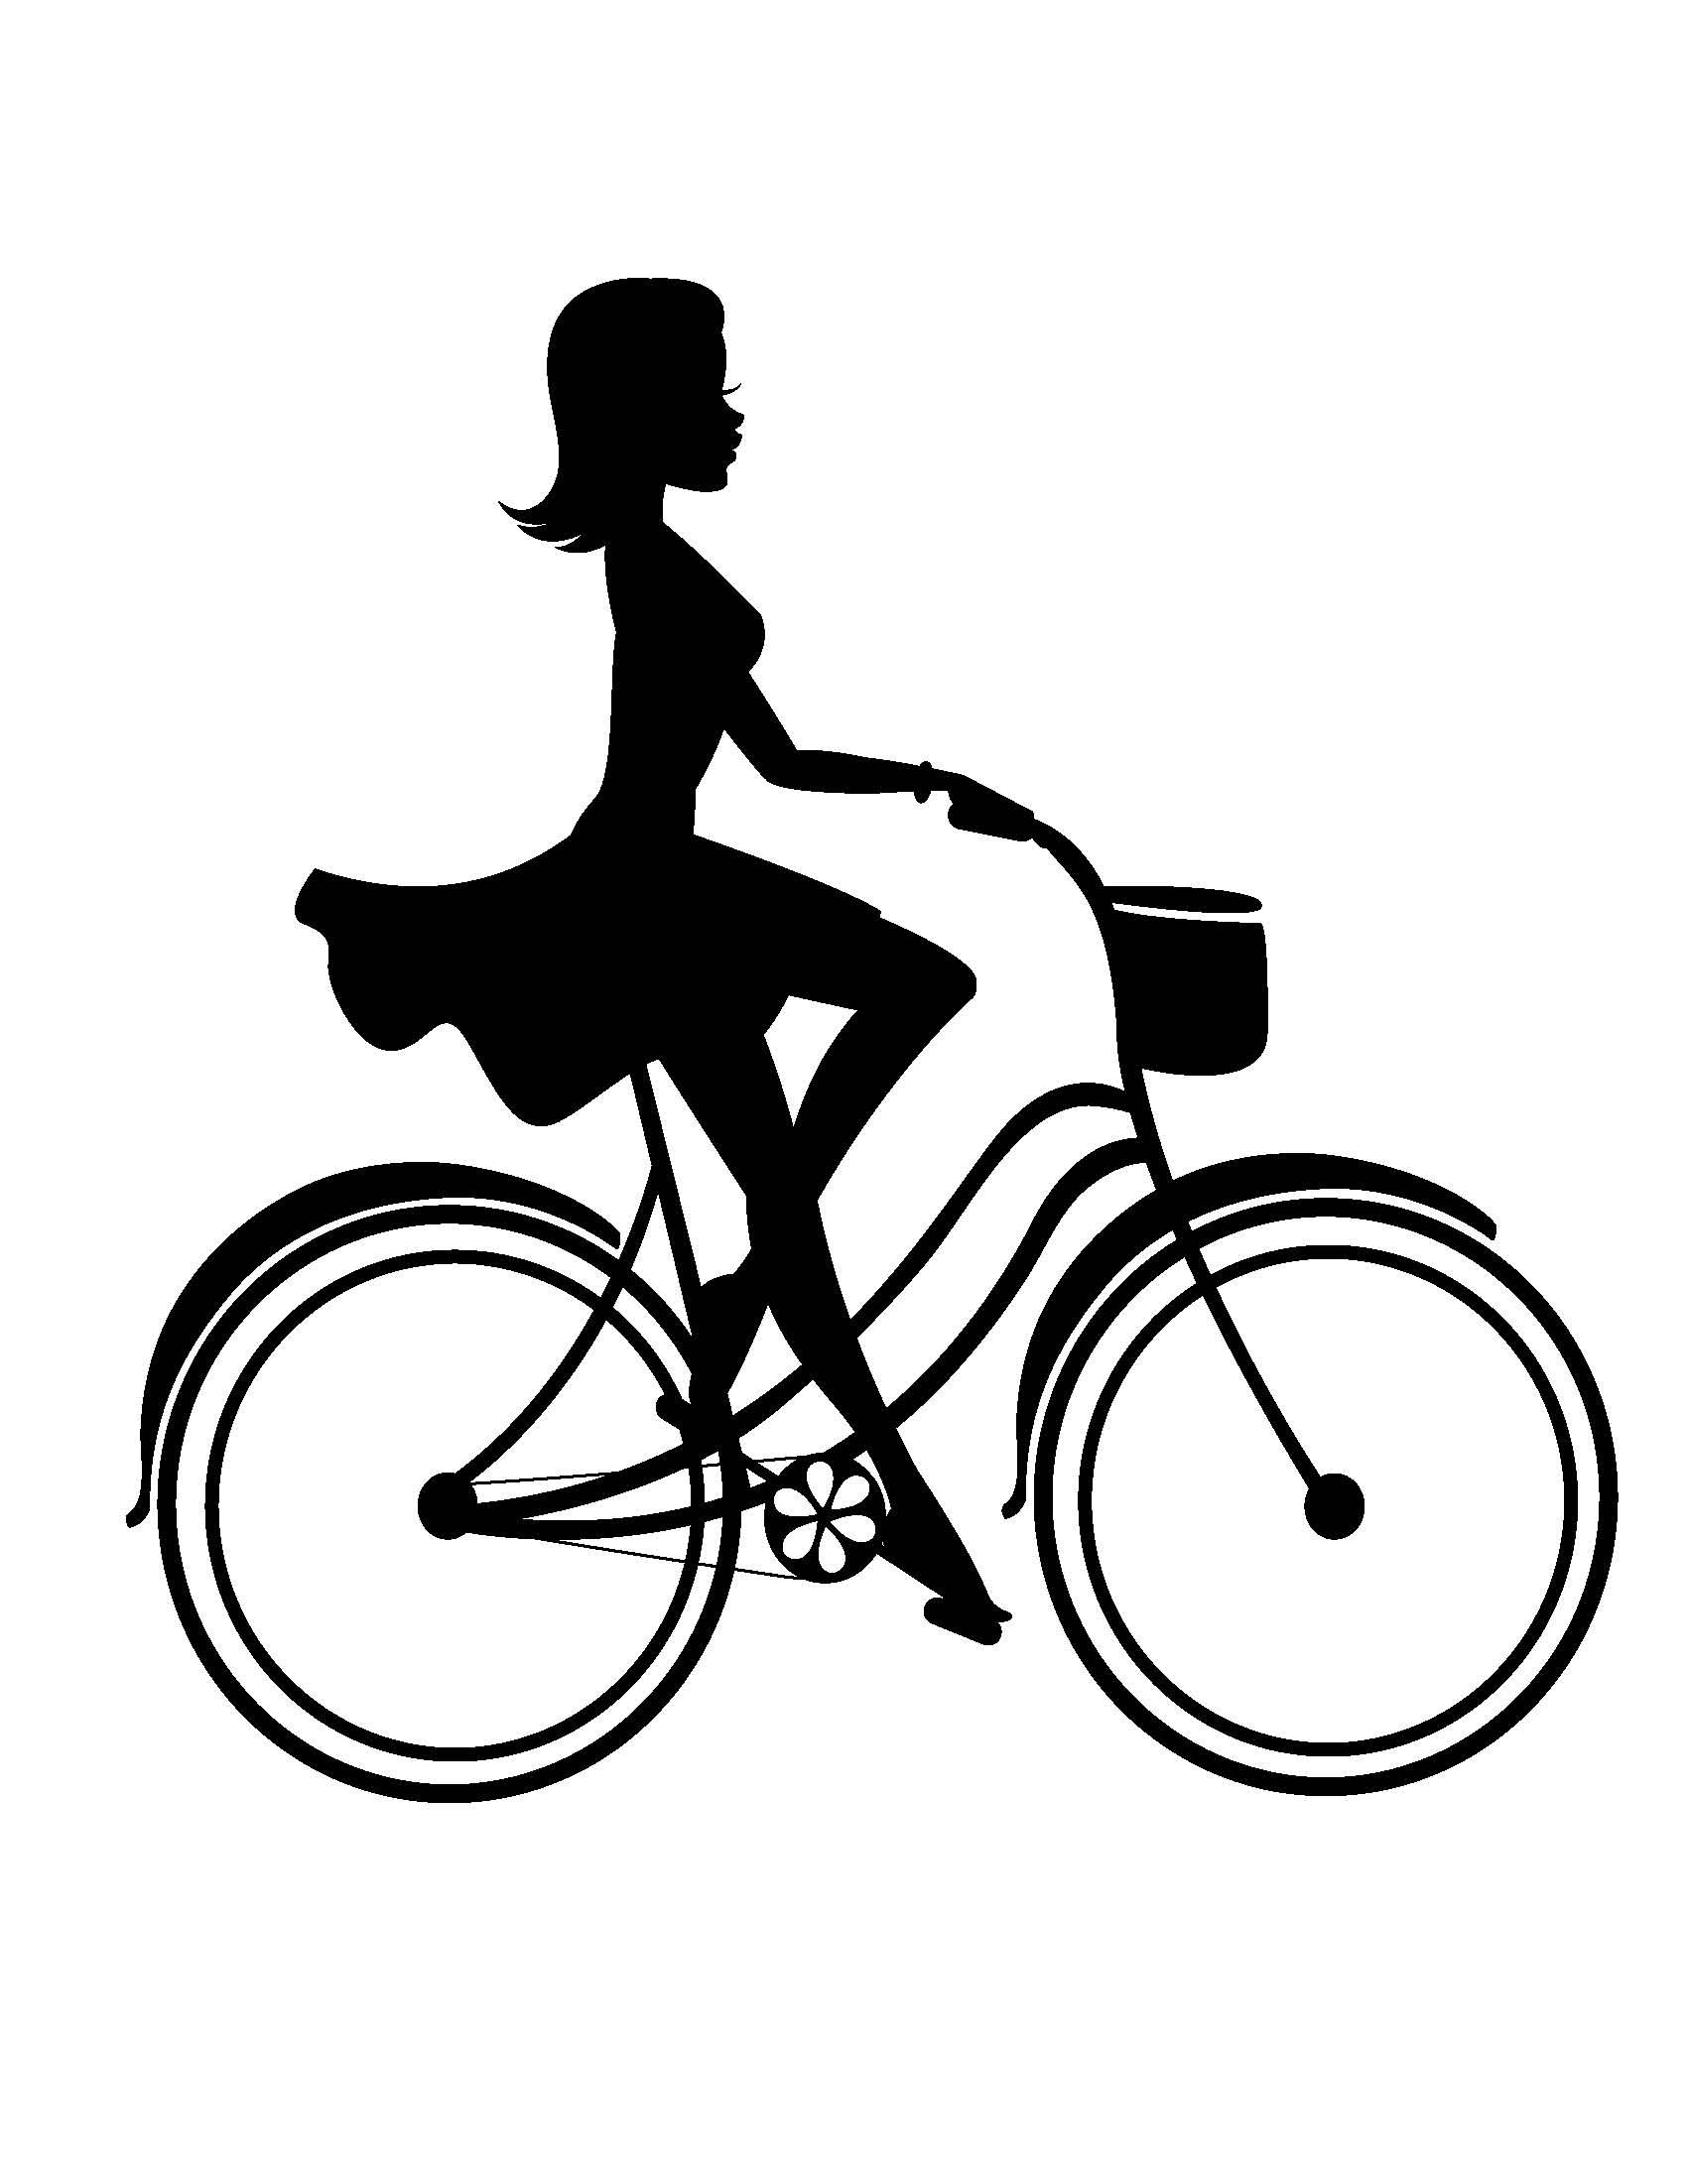 Clipart bicycle hobbies. Cycleandstyle com cycle chic